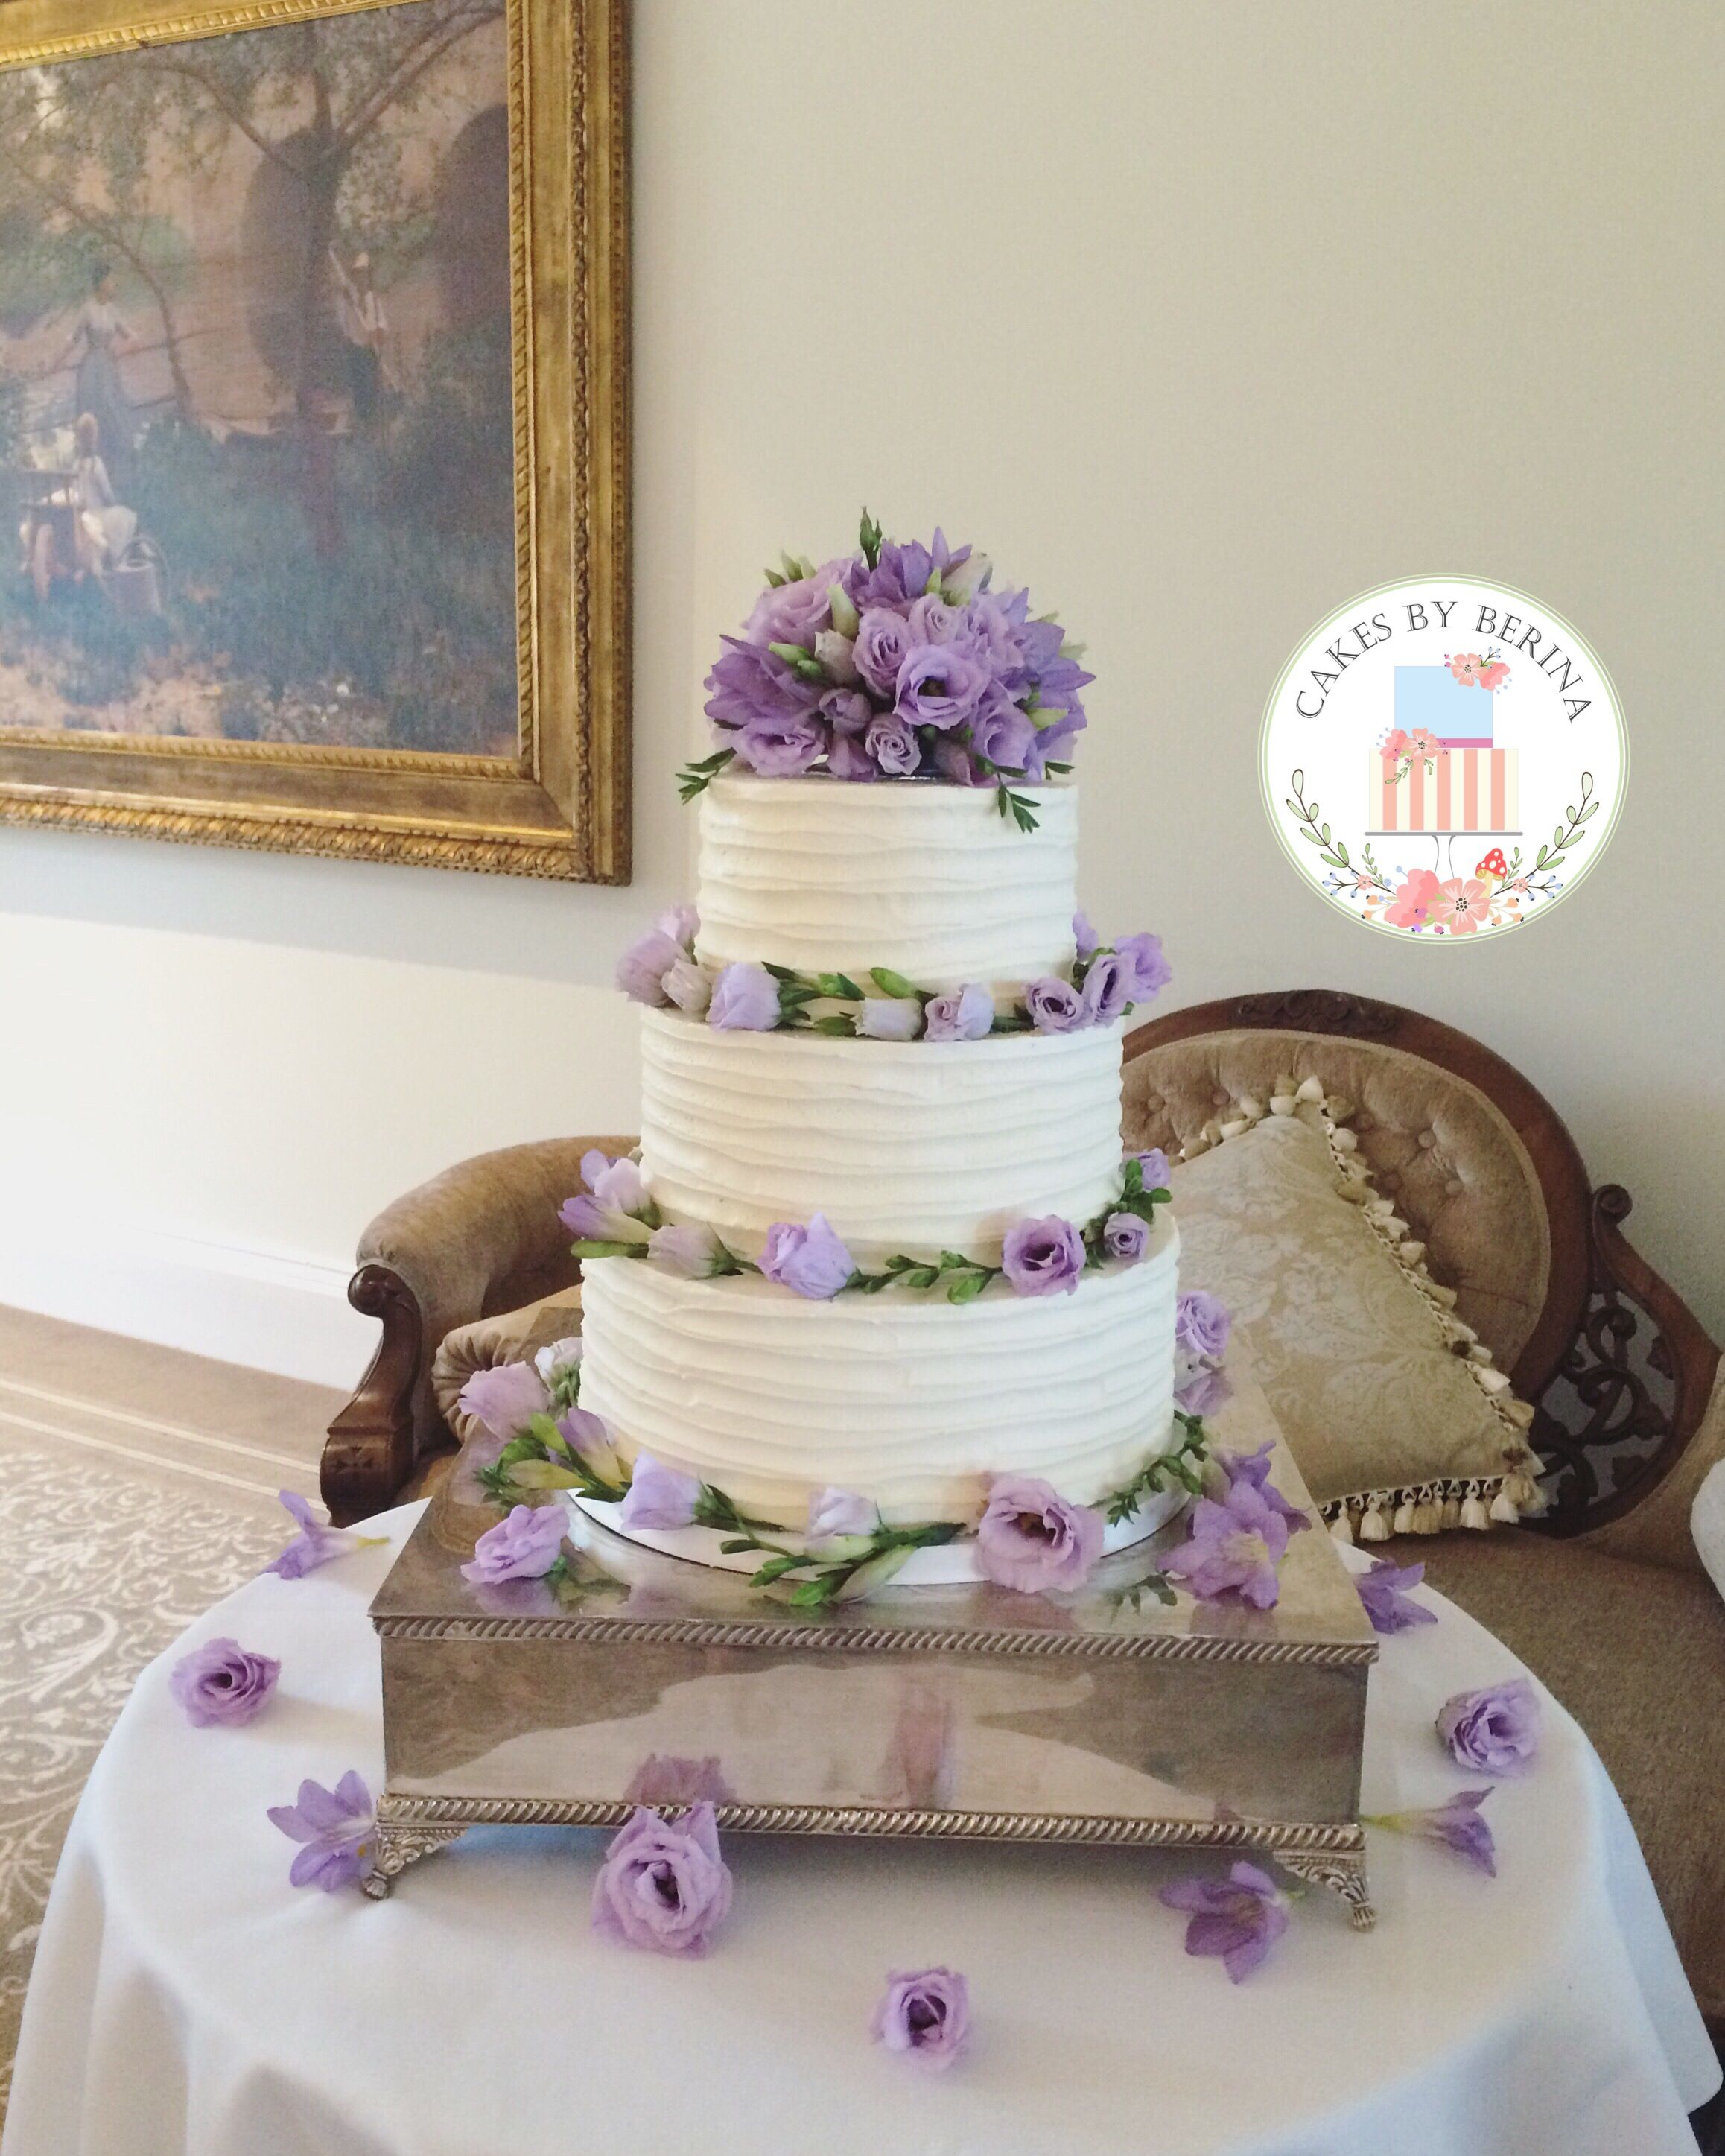 Rustic vintage semi wedding cake with buttercream ruffles